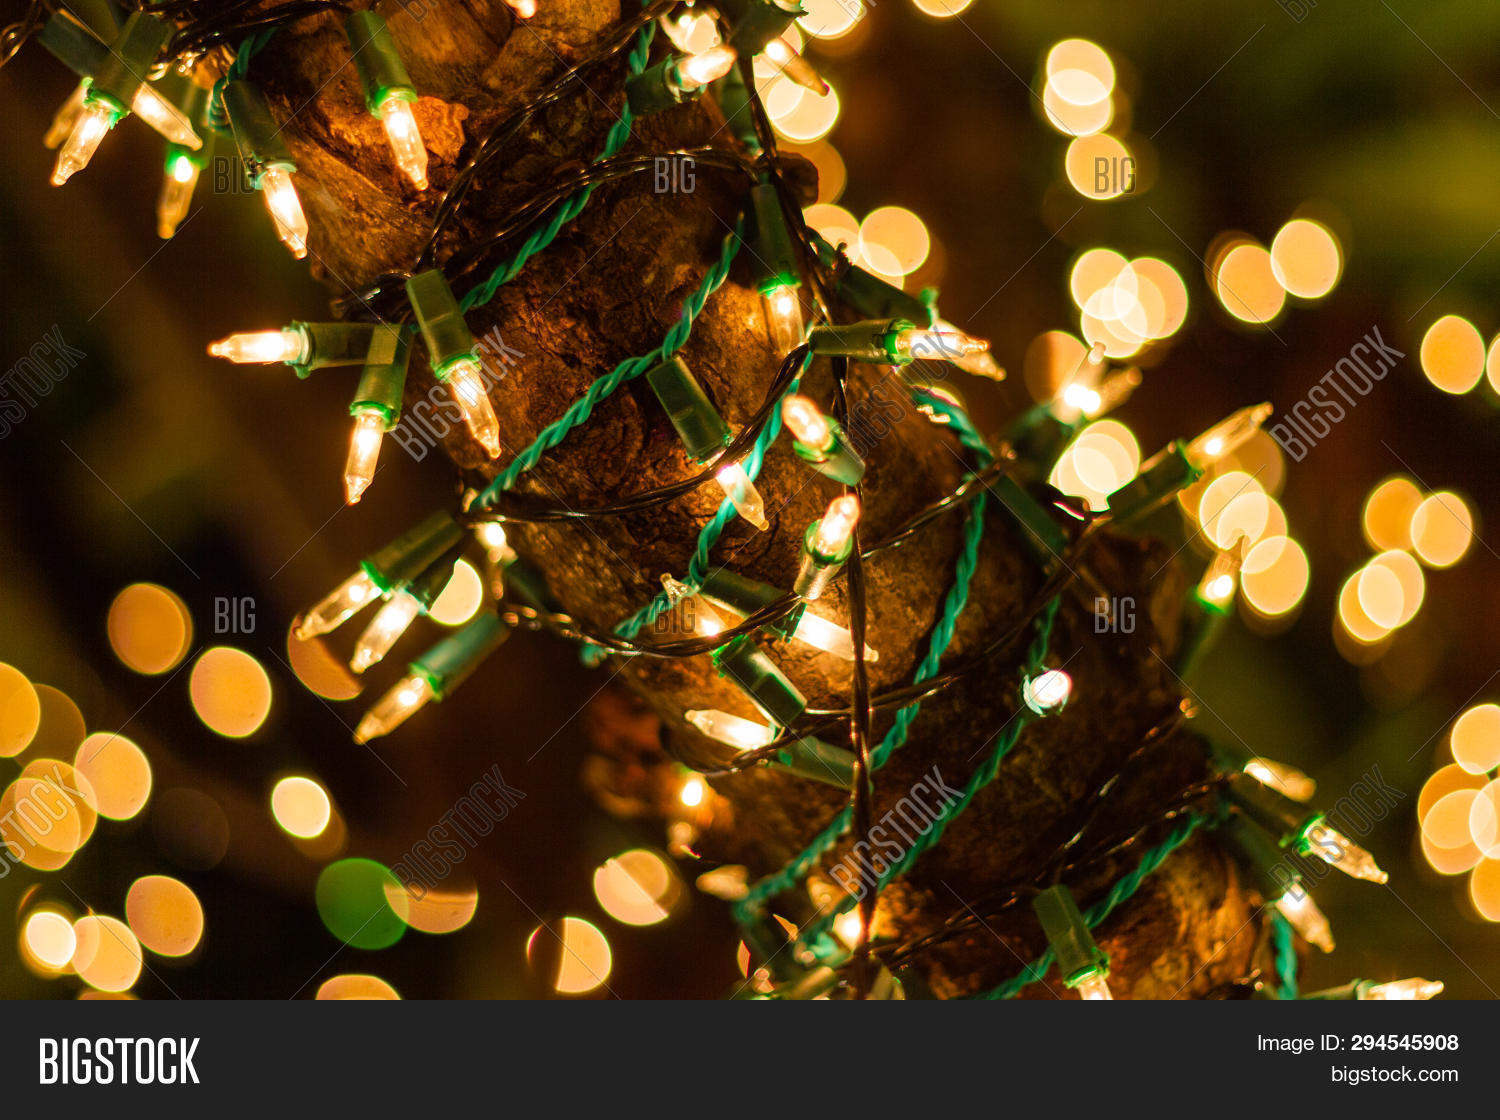 Decorative Outdoor Image Photo Free Trial Stock